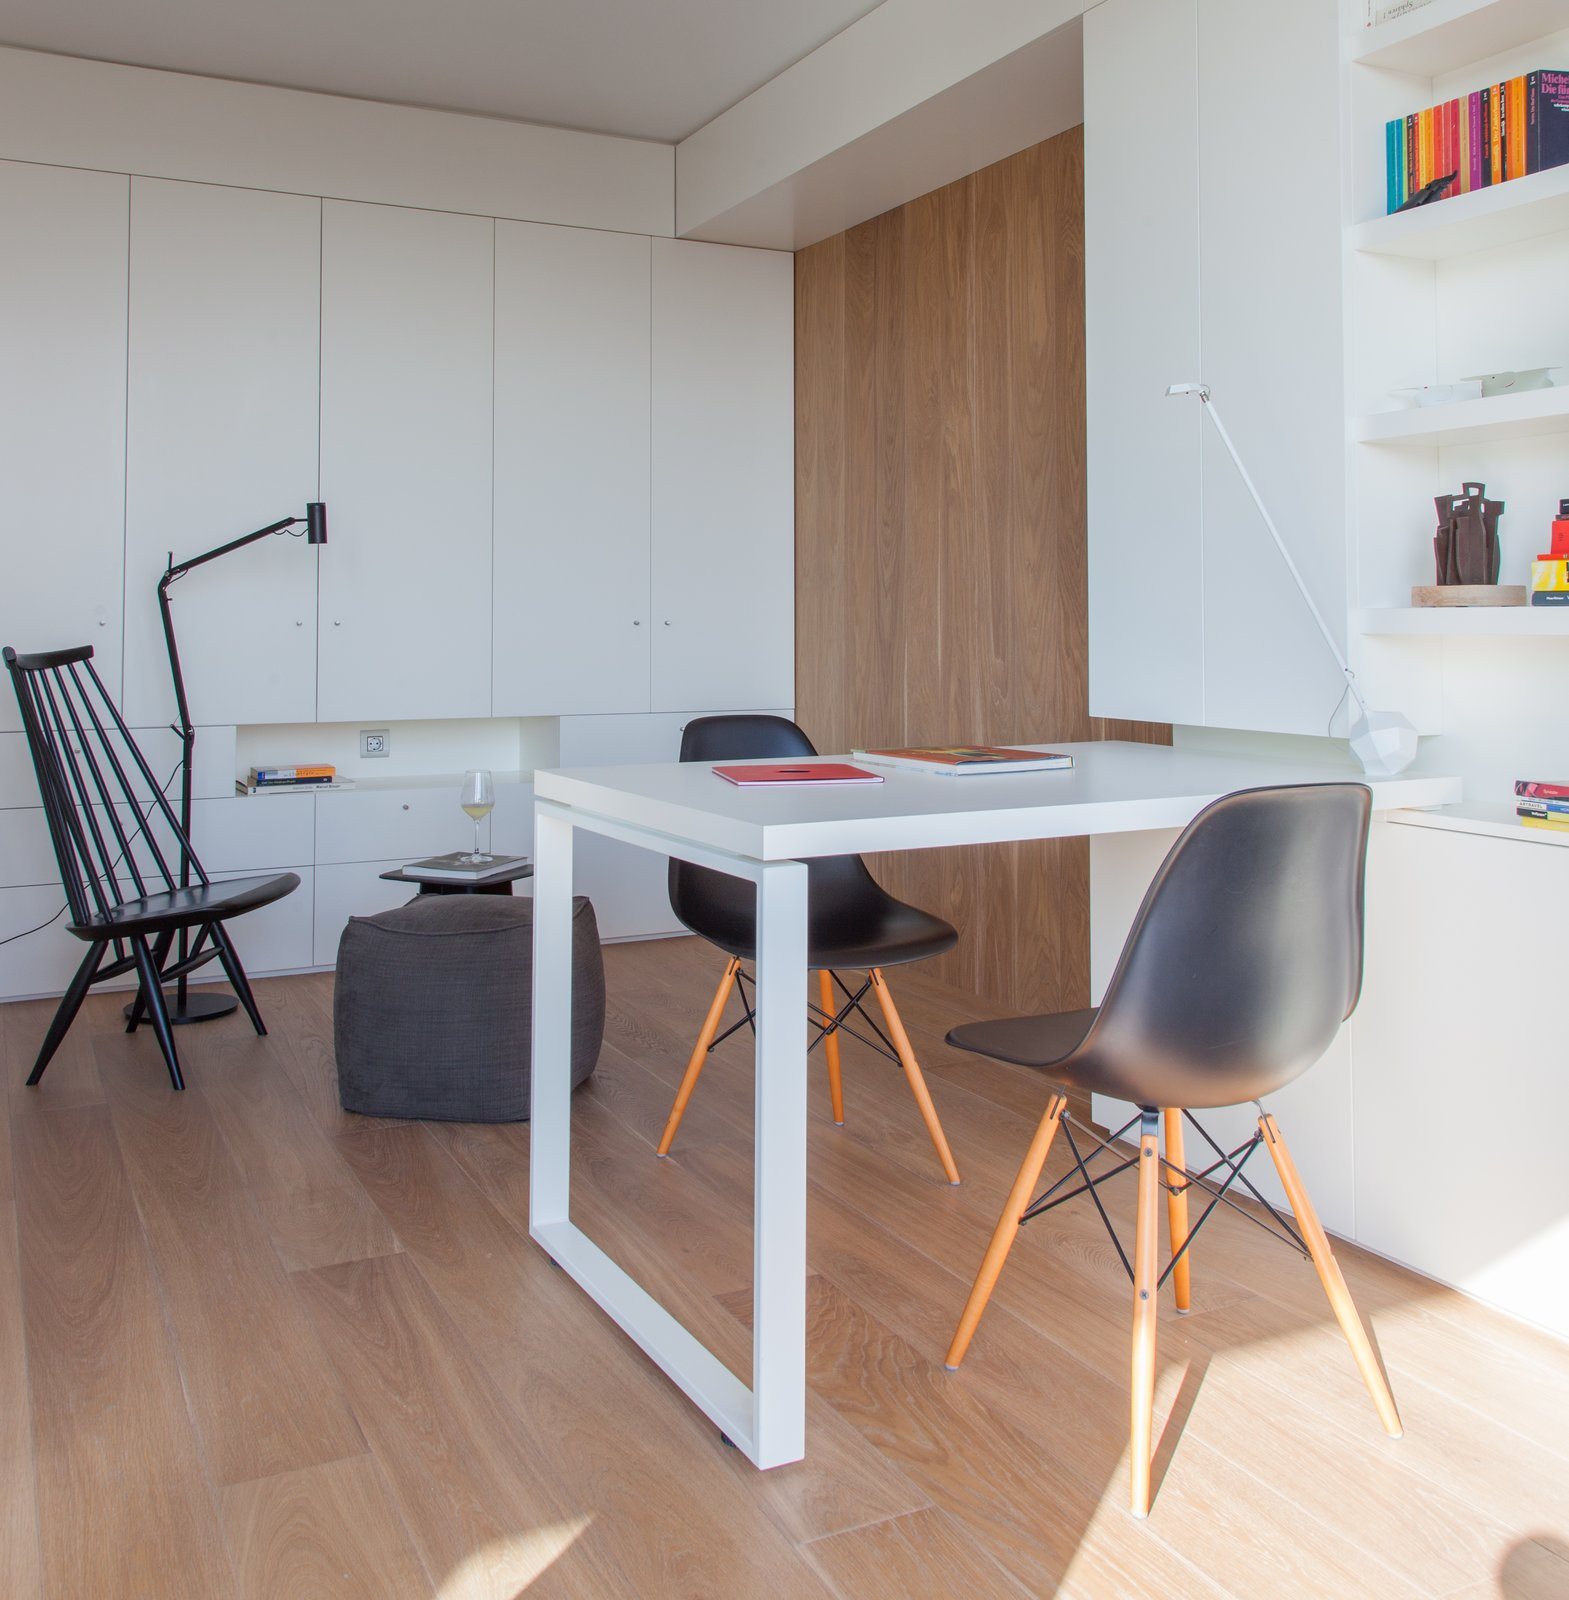 Living, Light Hardwood, Table, Chair, Lamps, Floor, Table, Shelves, End Tables, Storage, and Ottomans  Photo courtesy of Tobias Laarmann  Best Living Light Hardwood Table Photos from Eames Molded Chairs